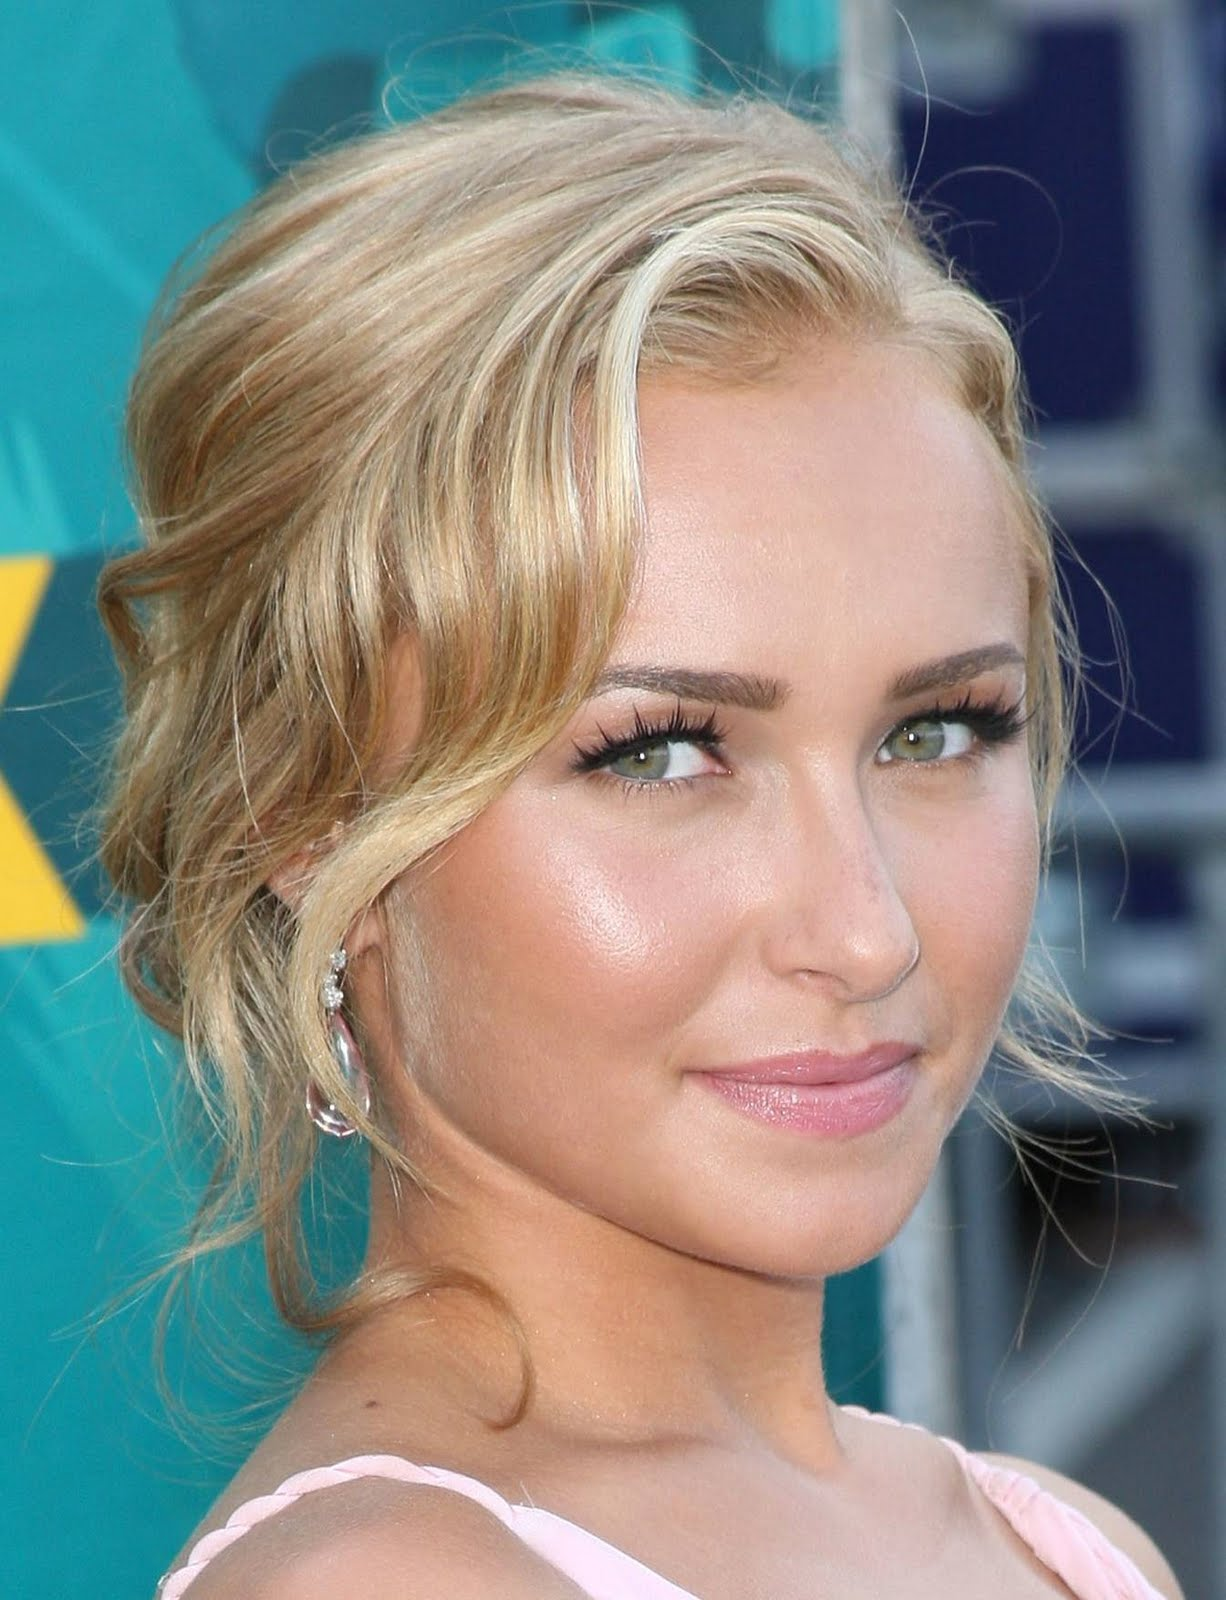 Kafgallery Celebrities Natural Blonde Hairstyles 2012